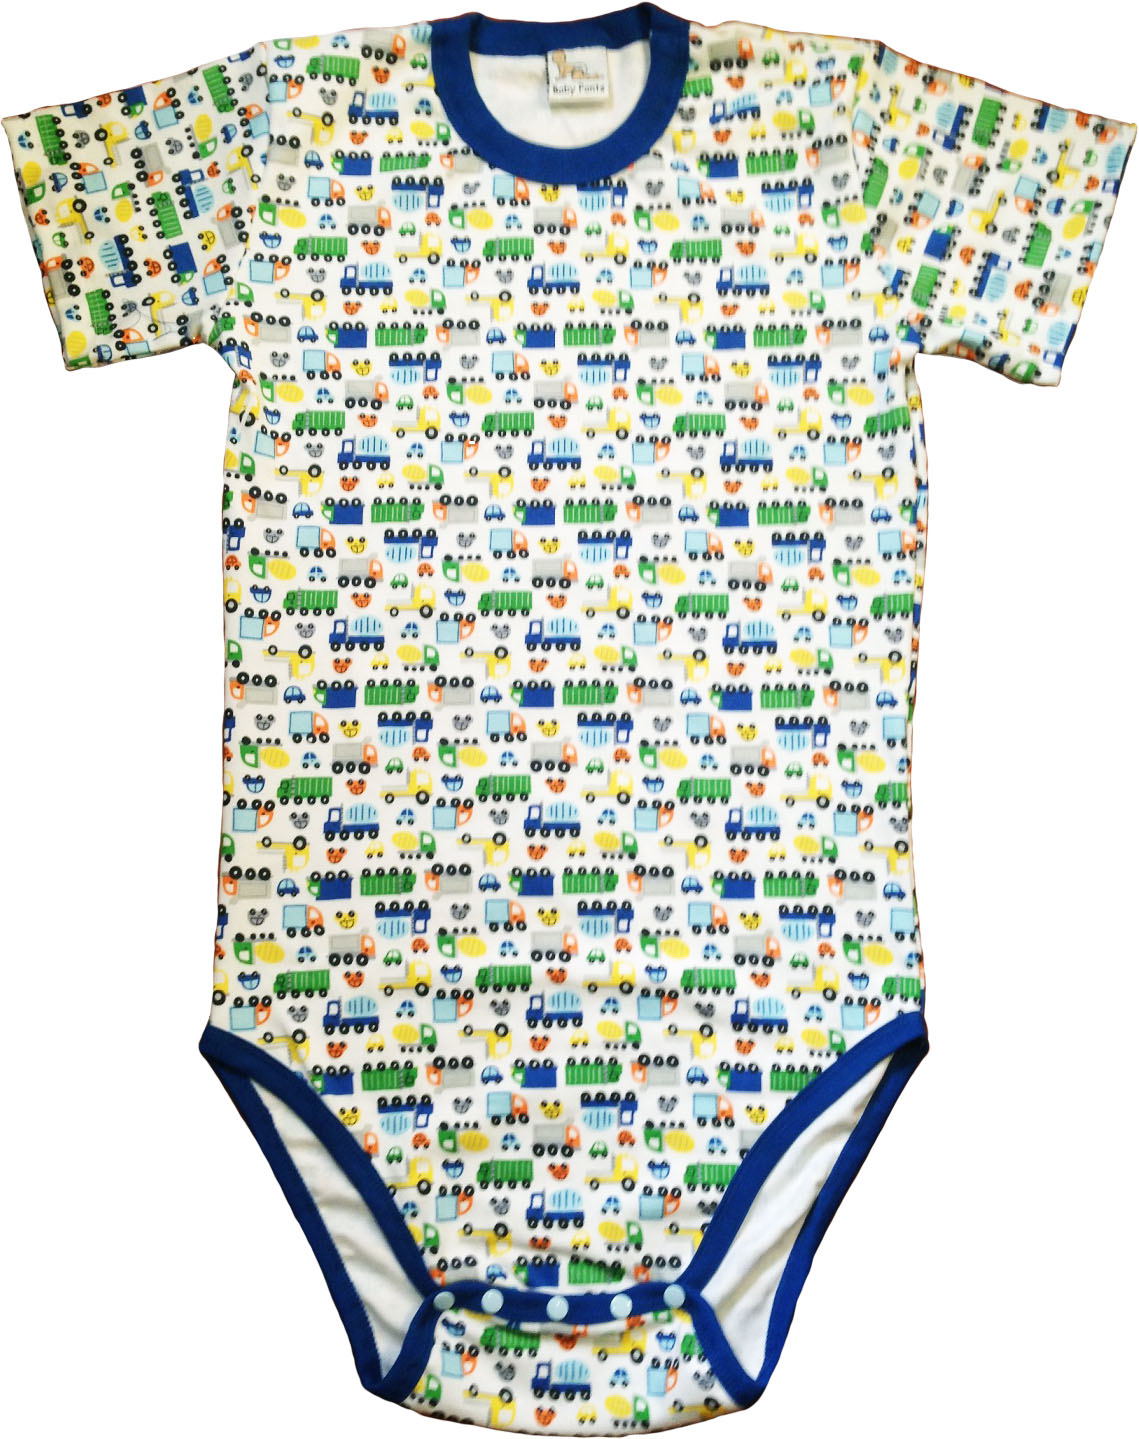 Baby Onezie for Adults